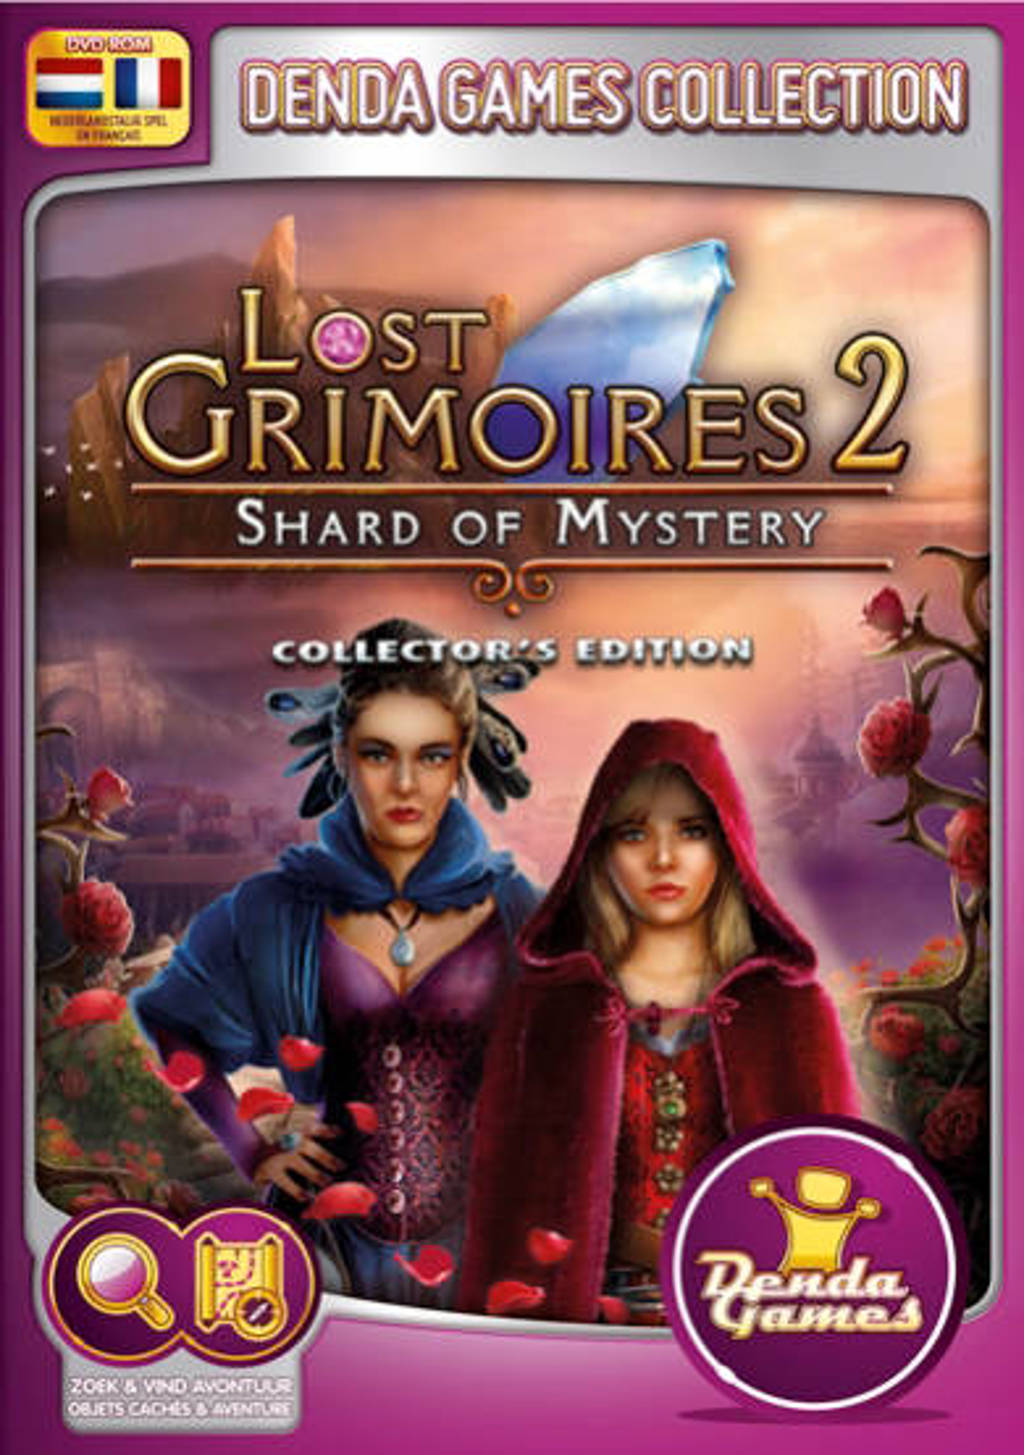 Lost grimoires 2 - The shard of mystery (Collectors edition)  (PC)